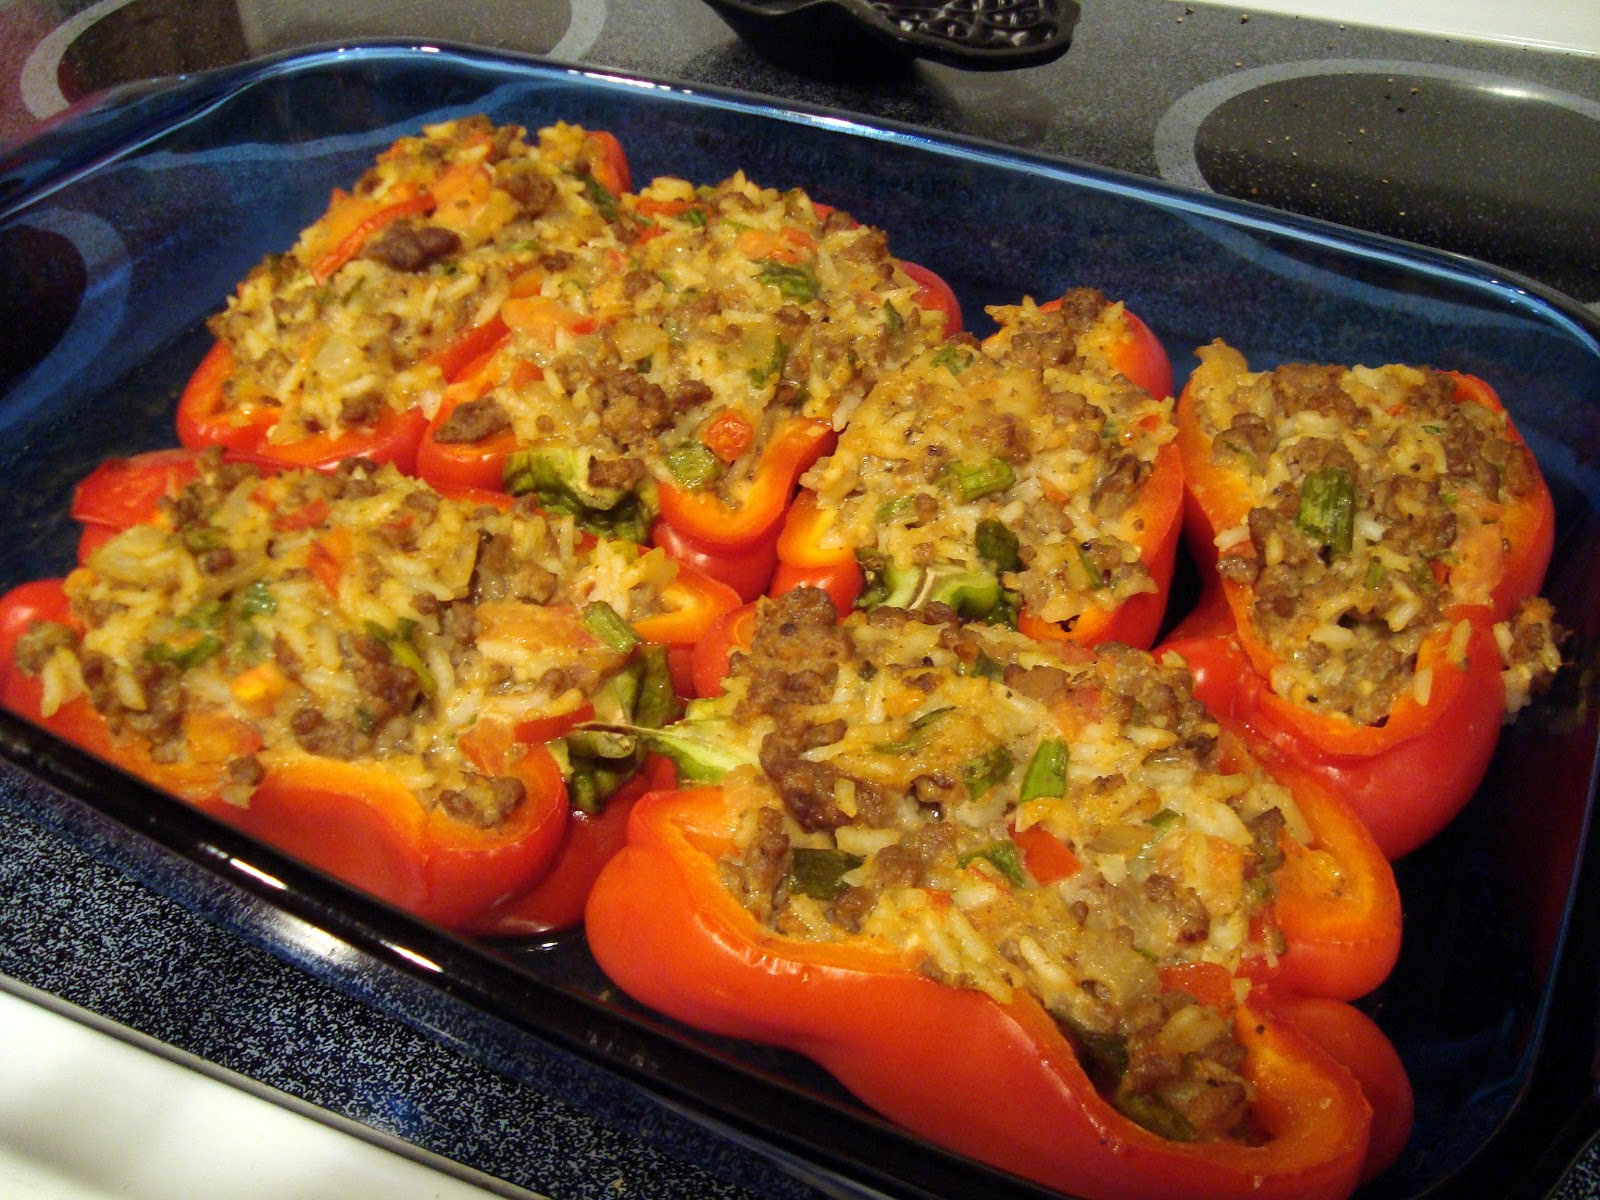 Little Cooking: Stuffed Red Peppers